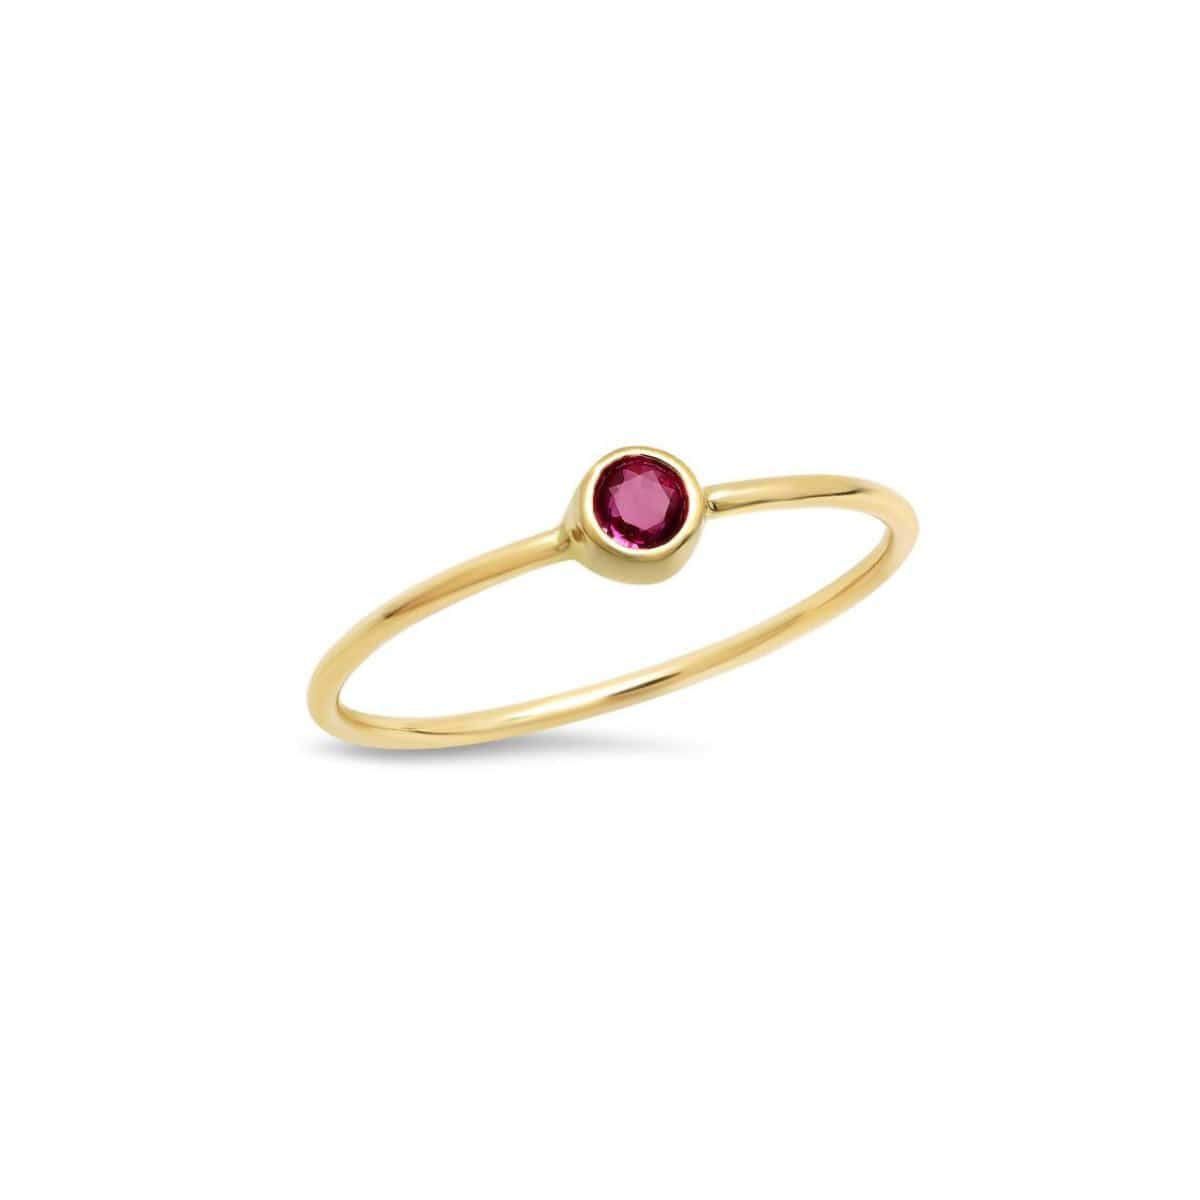 Small Round Ruby Solitaire Gold Ring Caitlin nicole